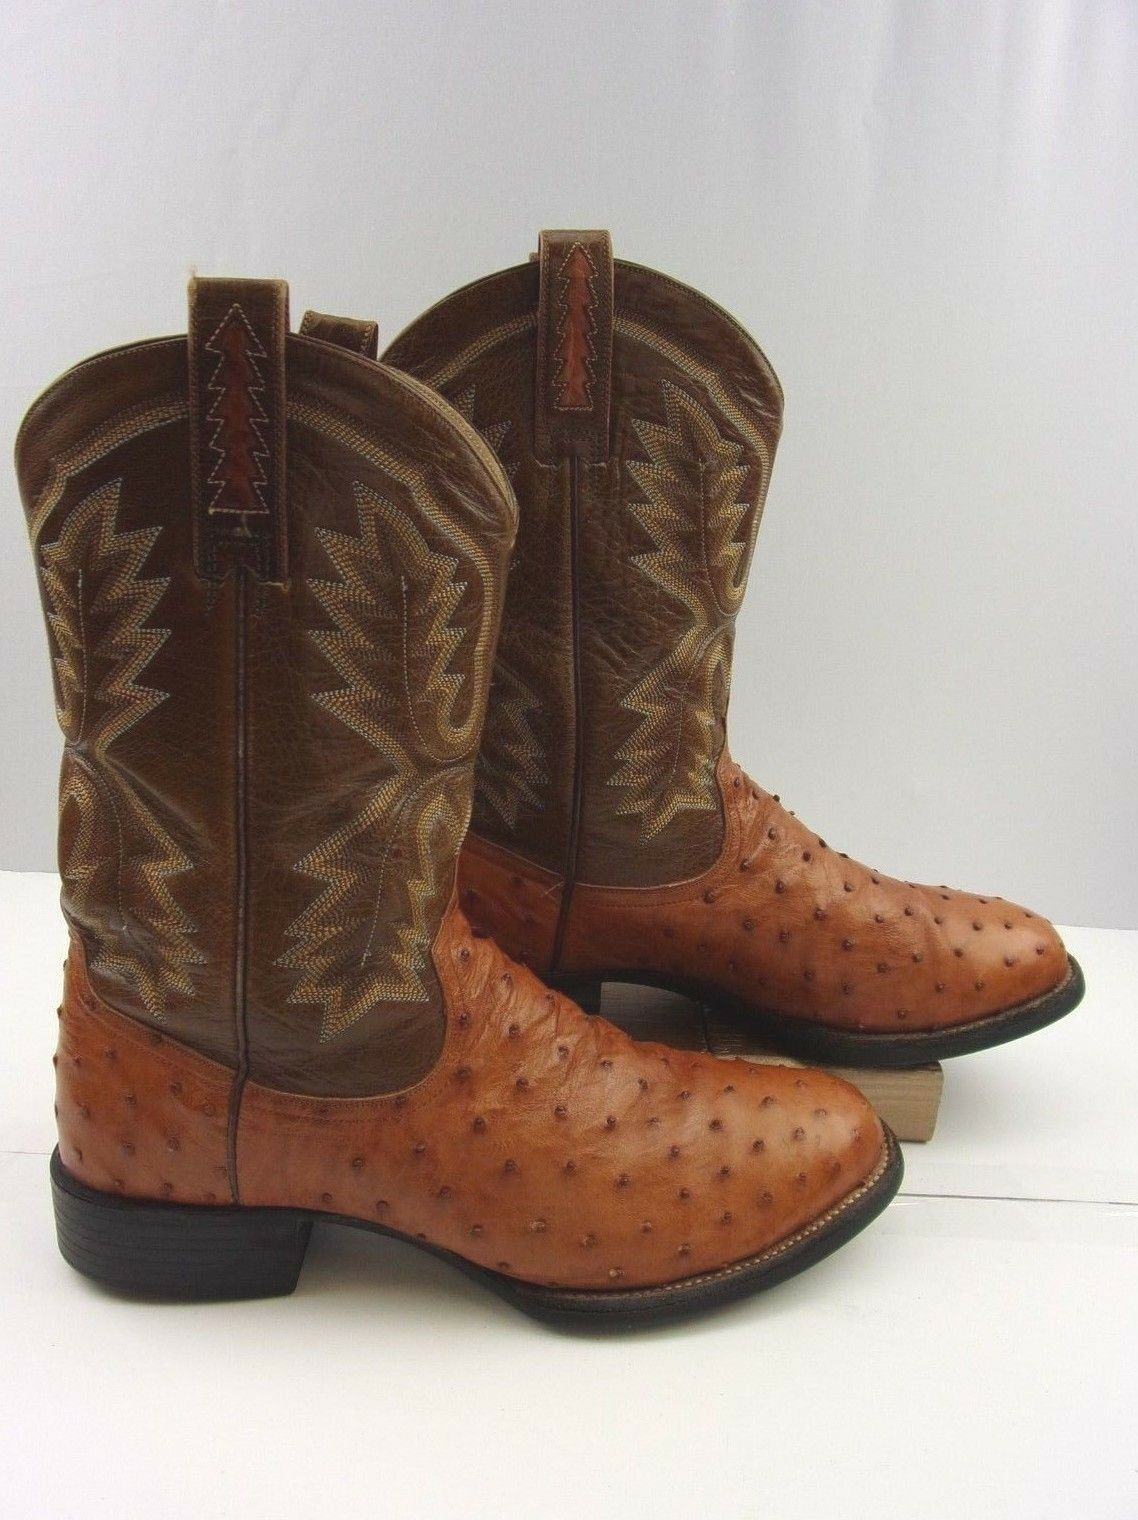 Men's Ariat Brown Full Quill Ostrich Leather Cowboy Western Boots Size: 11 W